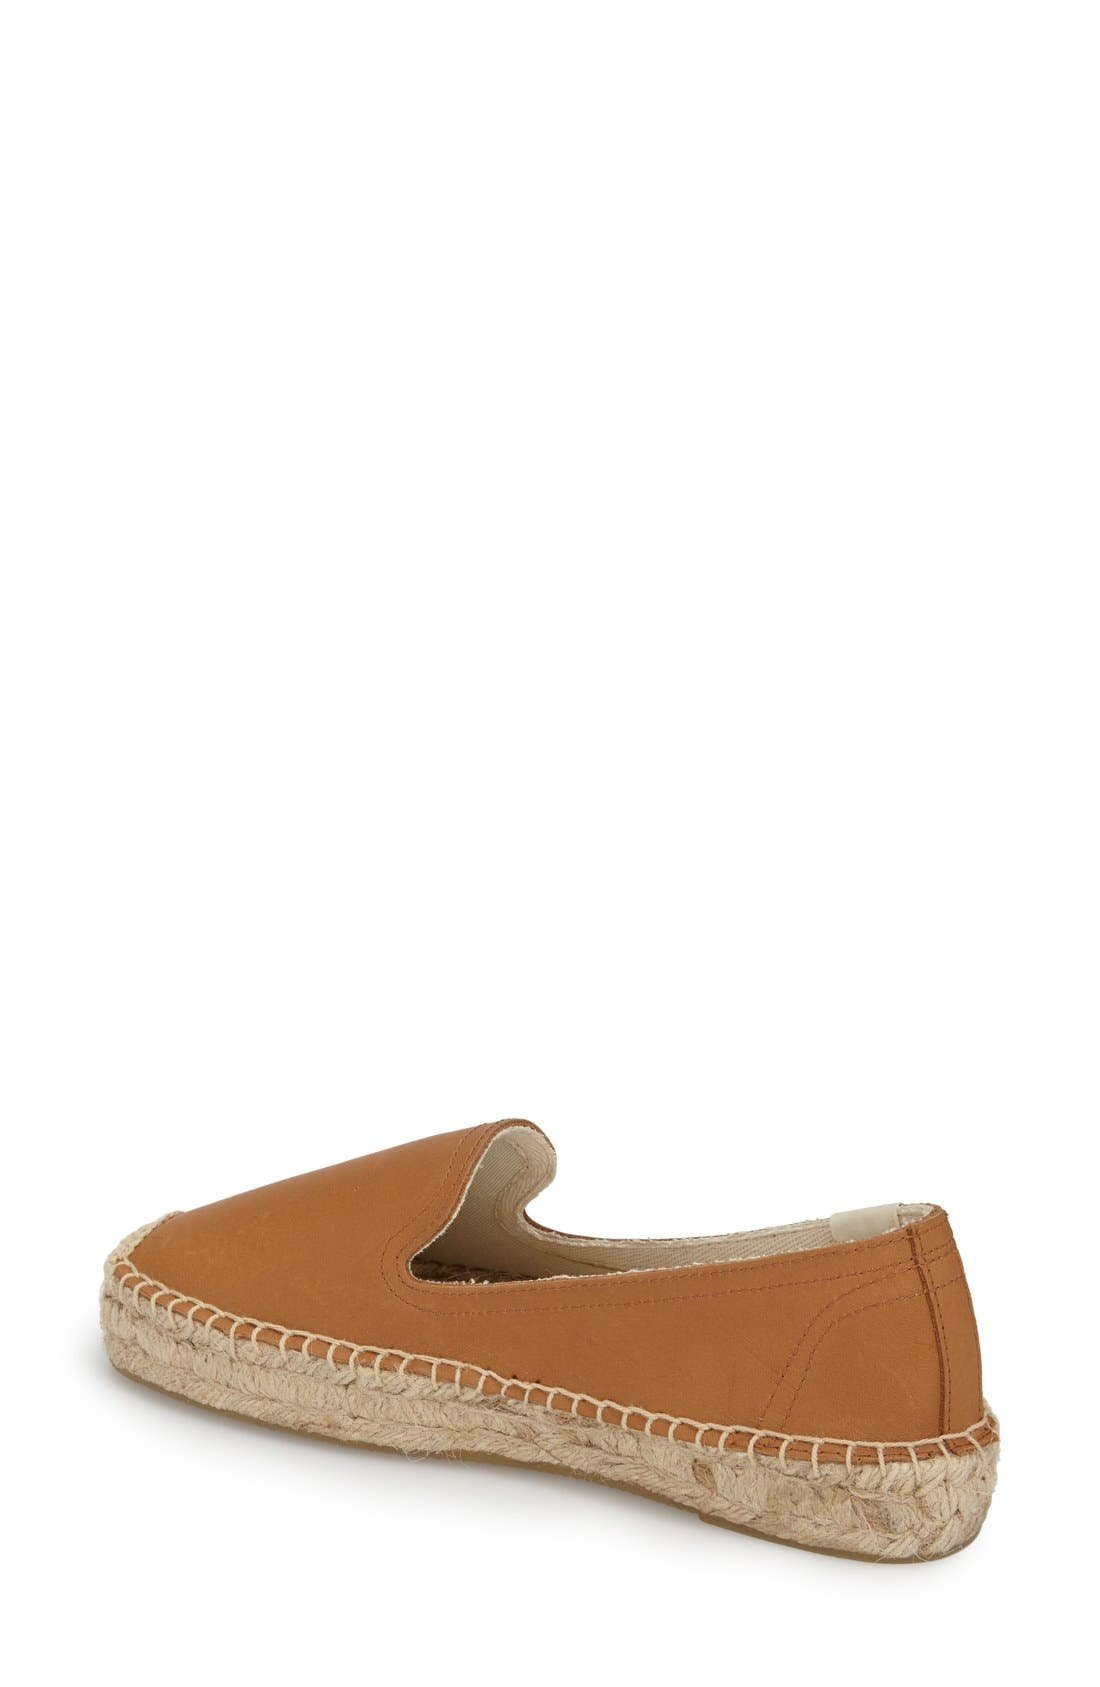 'Smoking' Espadrille Platform Shoe,                             Alternate thumbnail 5, color,                             TAN LEATHER